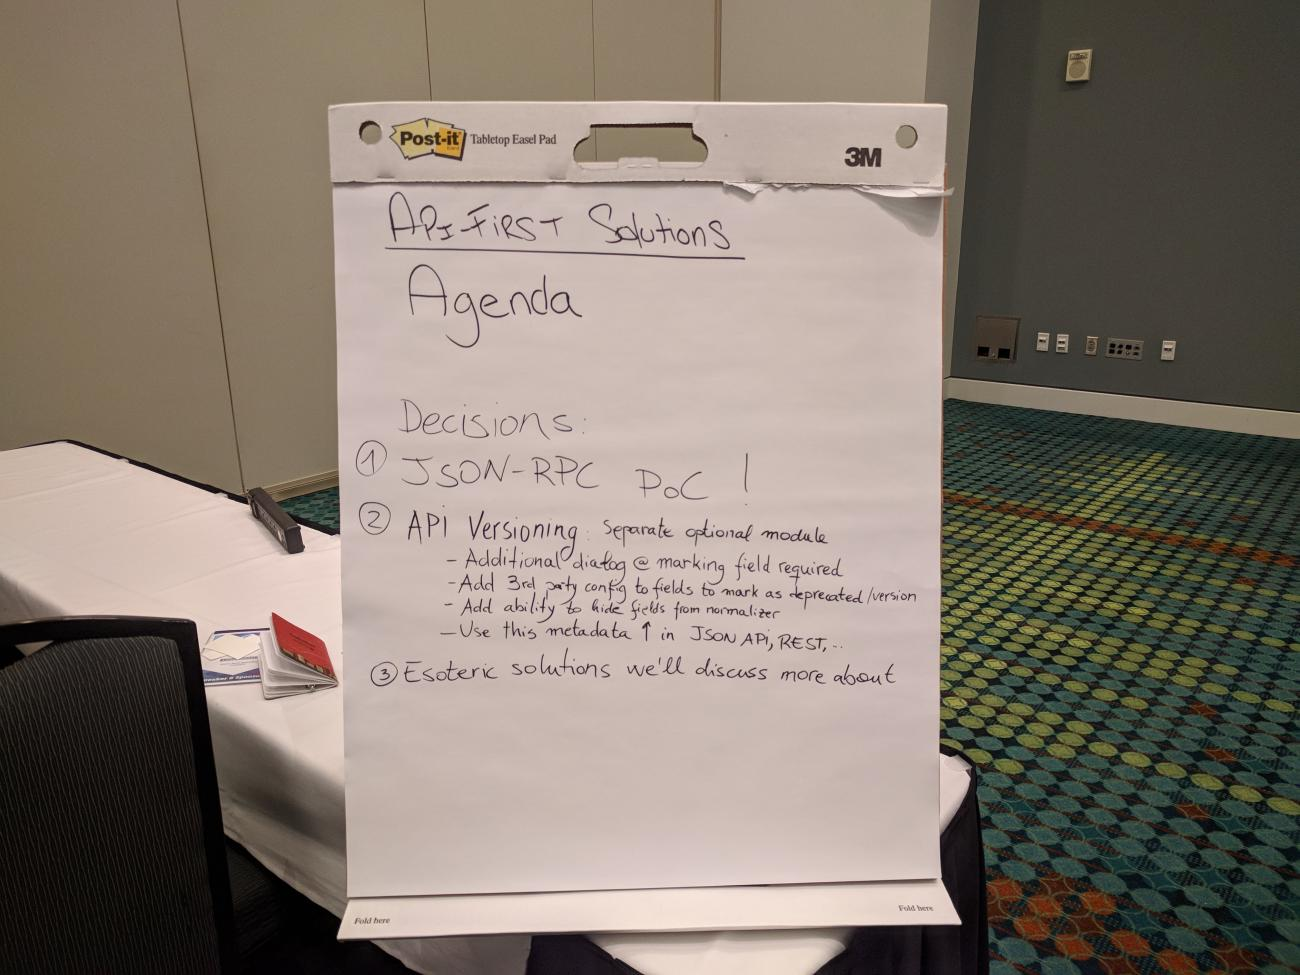 The decision log after finishing the BoF at DrupalCon